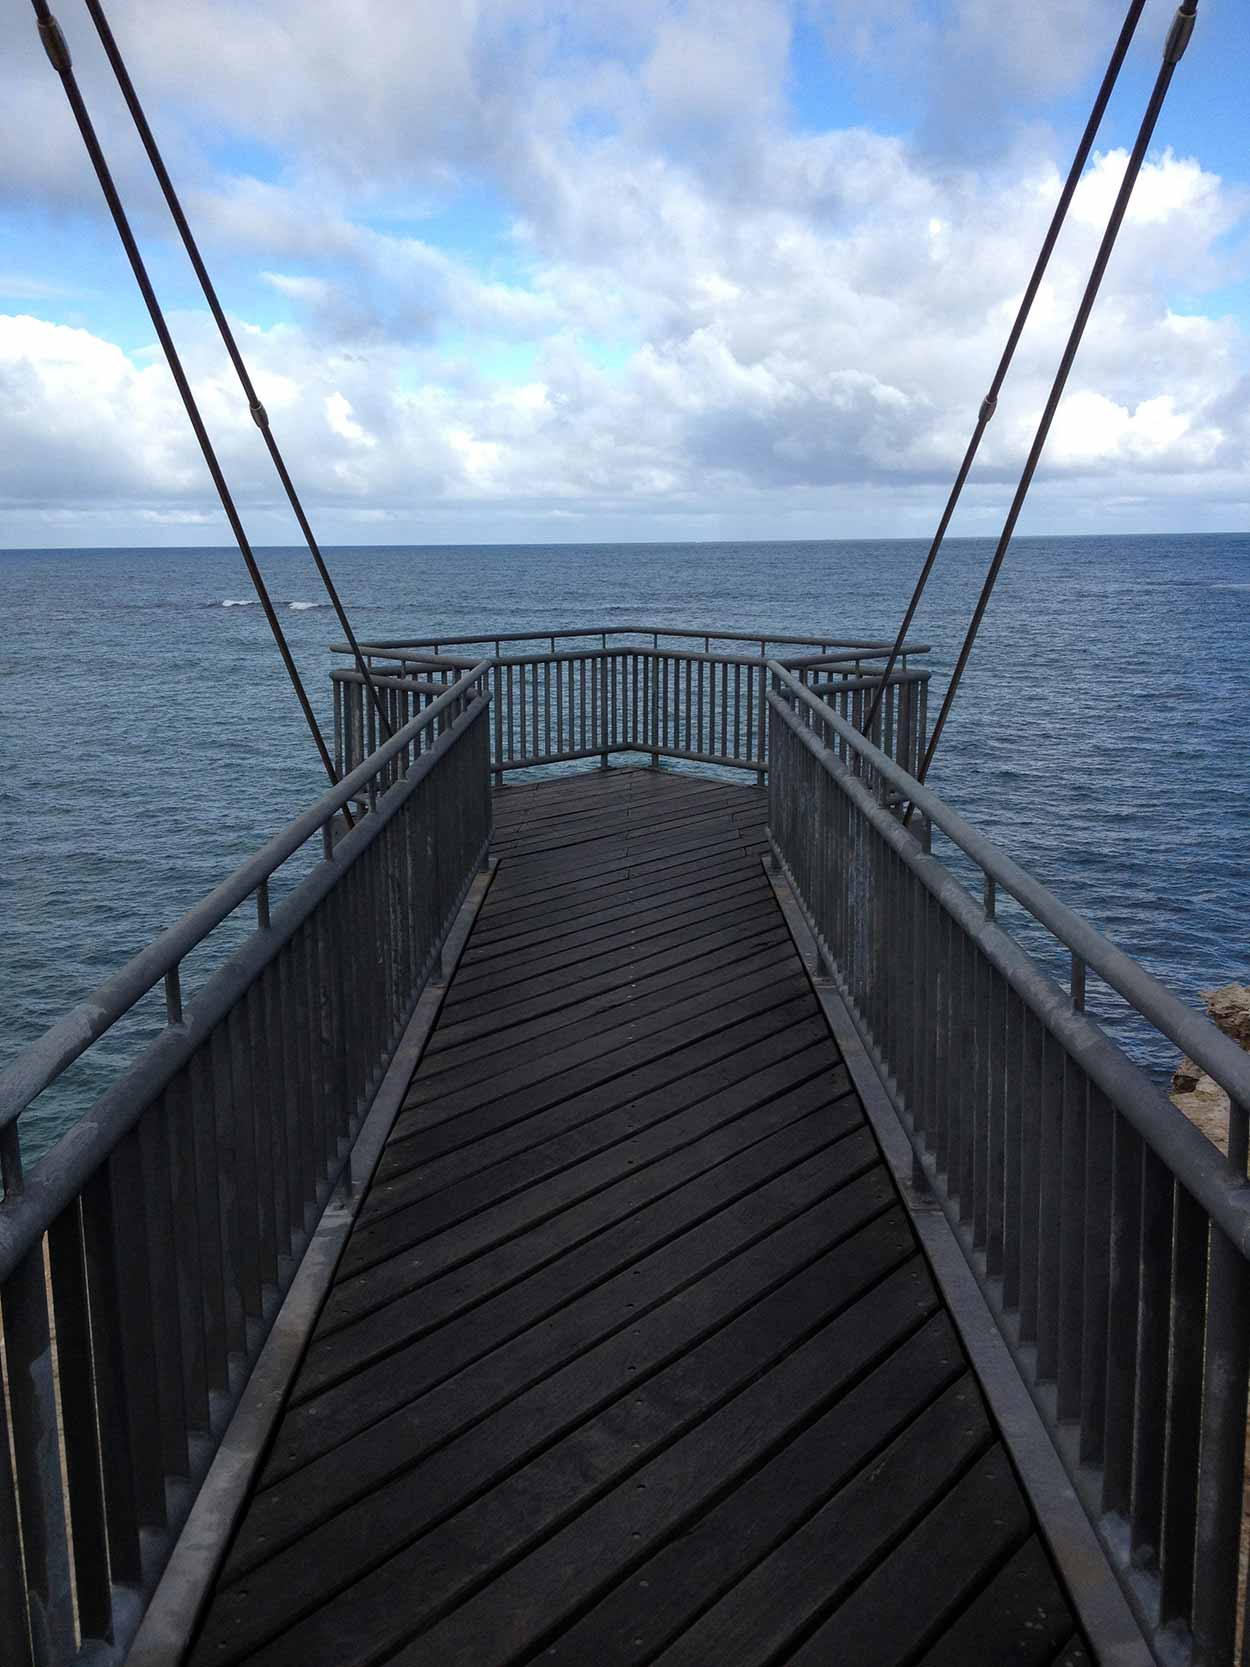 Cantilevered lookout on the western side of Point Peron, Perth, Western Australia